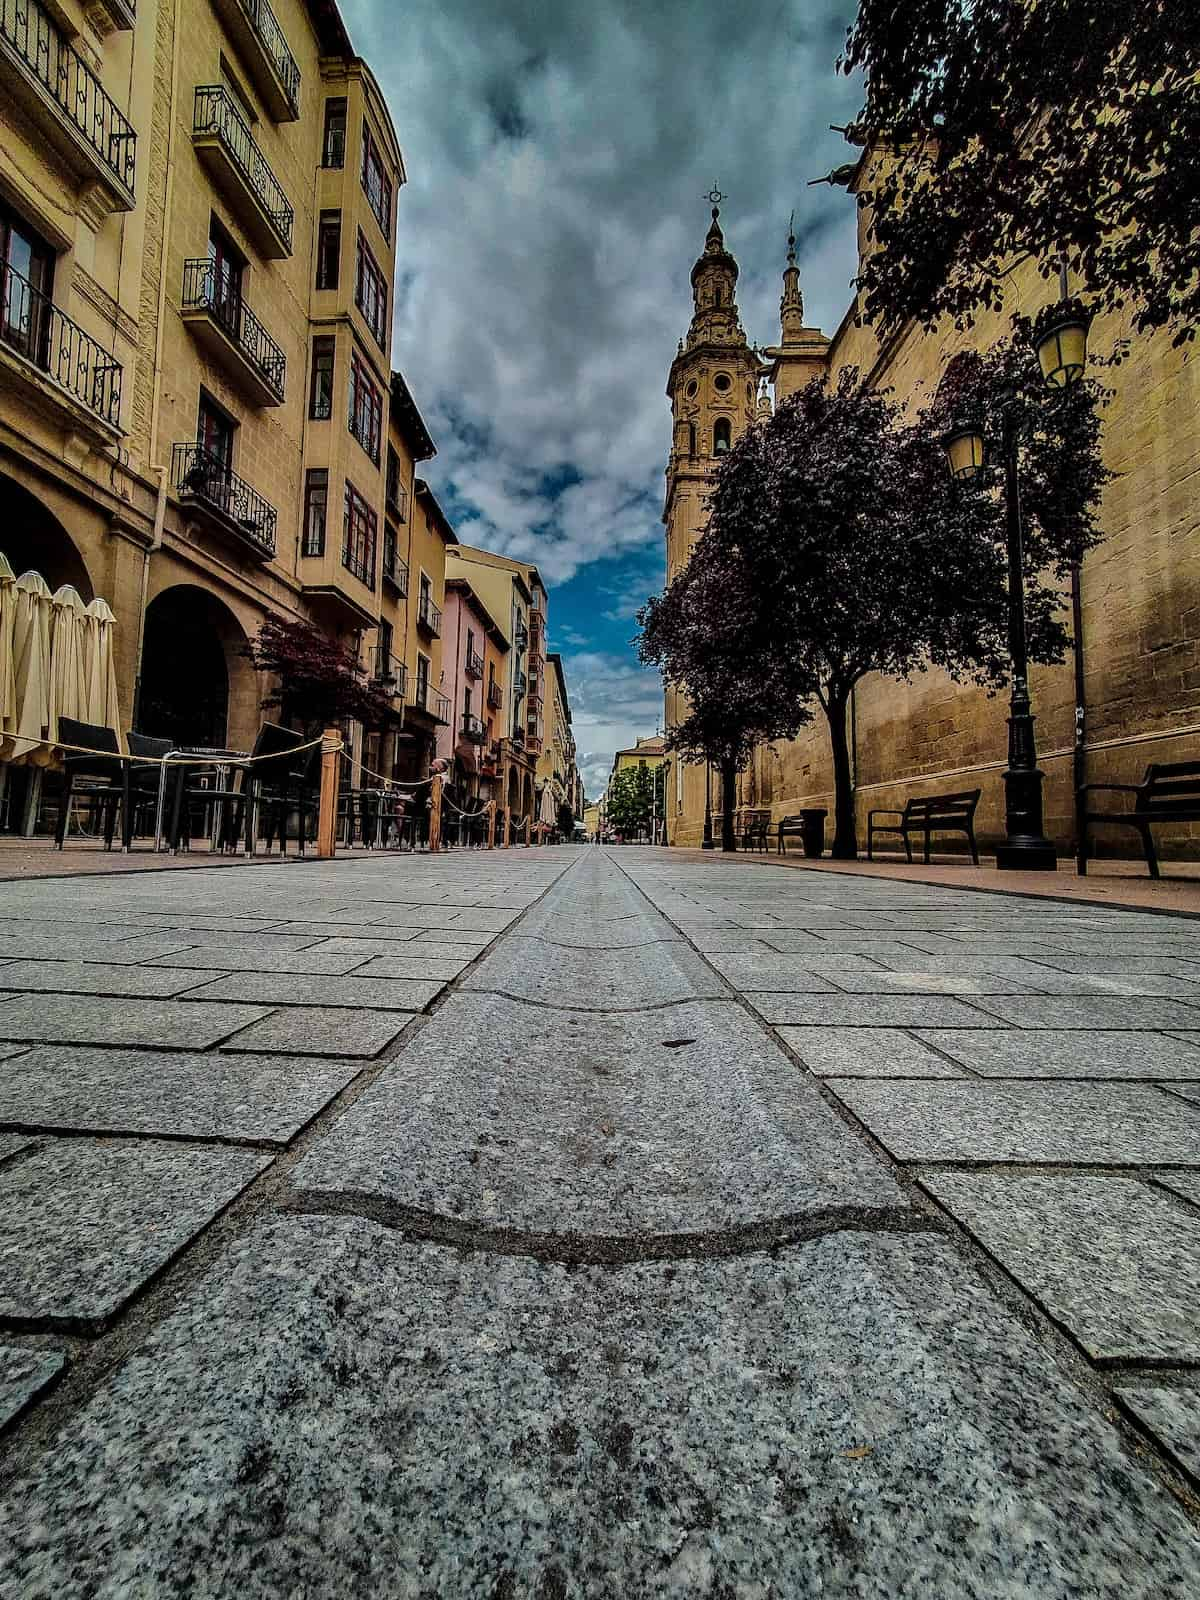 Low-angle view of a pedestrian street in Logroño, Spain